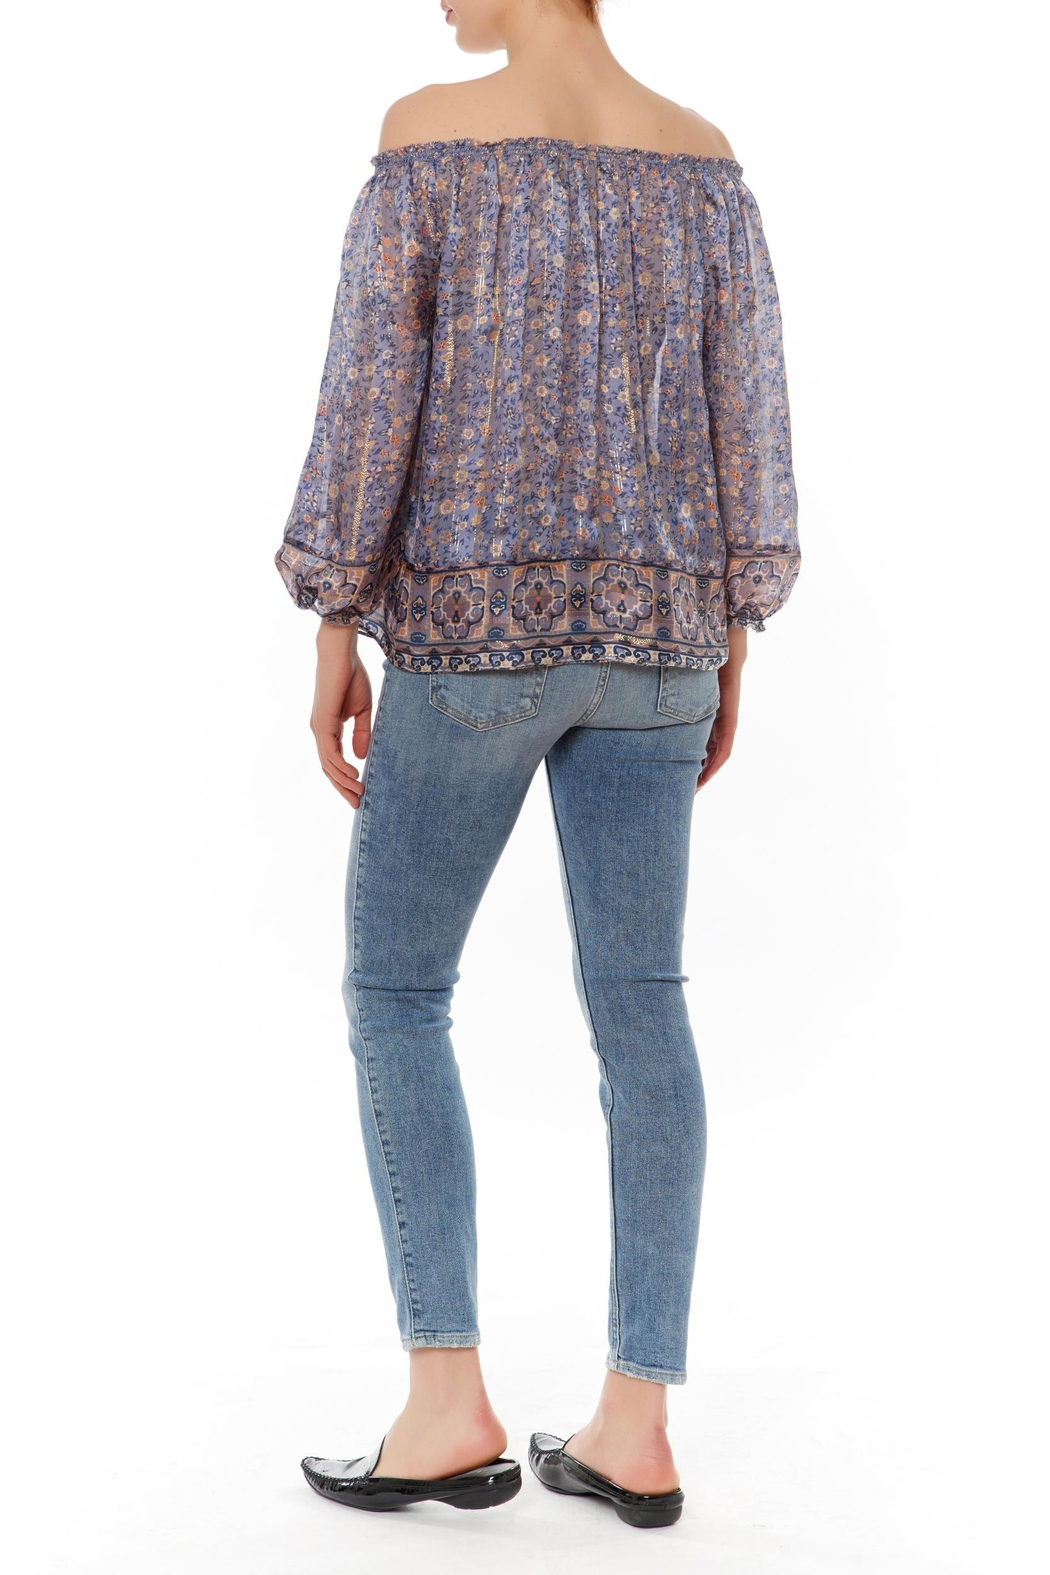 Joie Bamboo B Top - Front Full Image